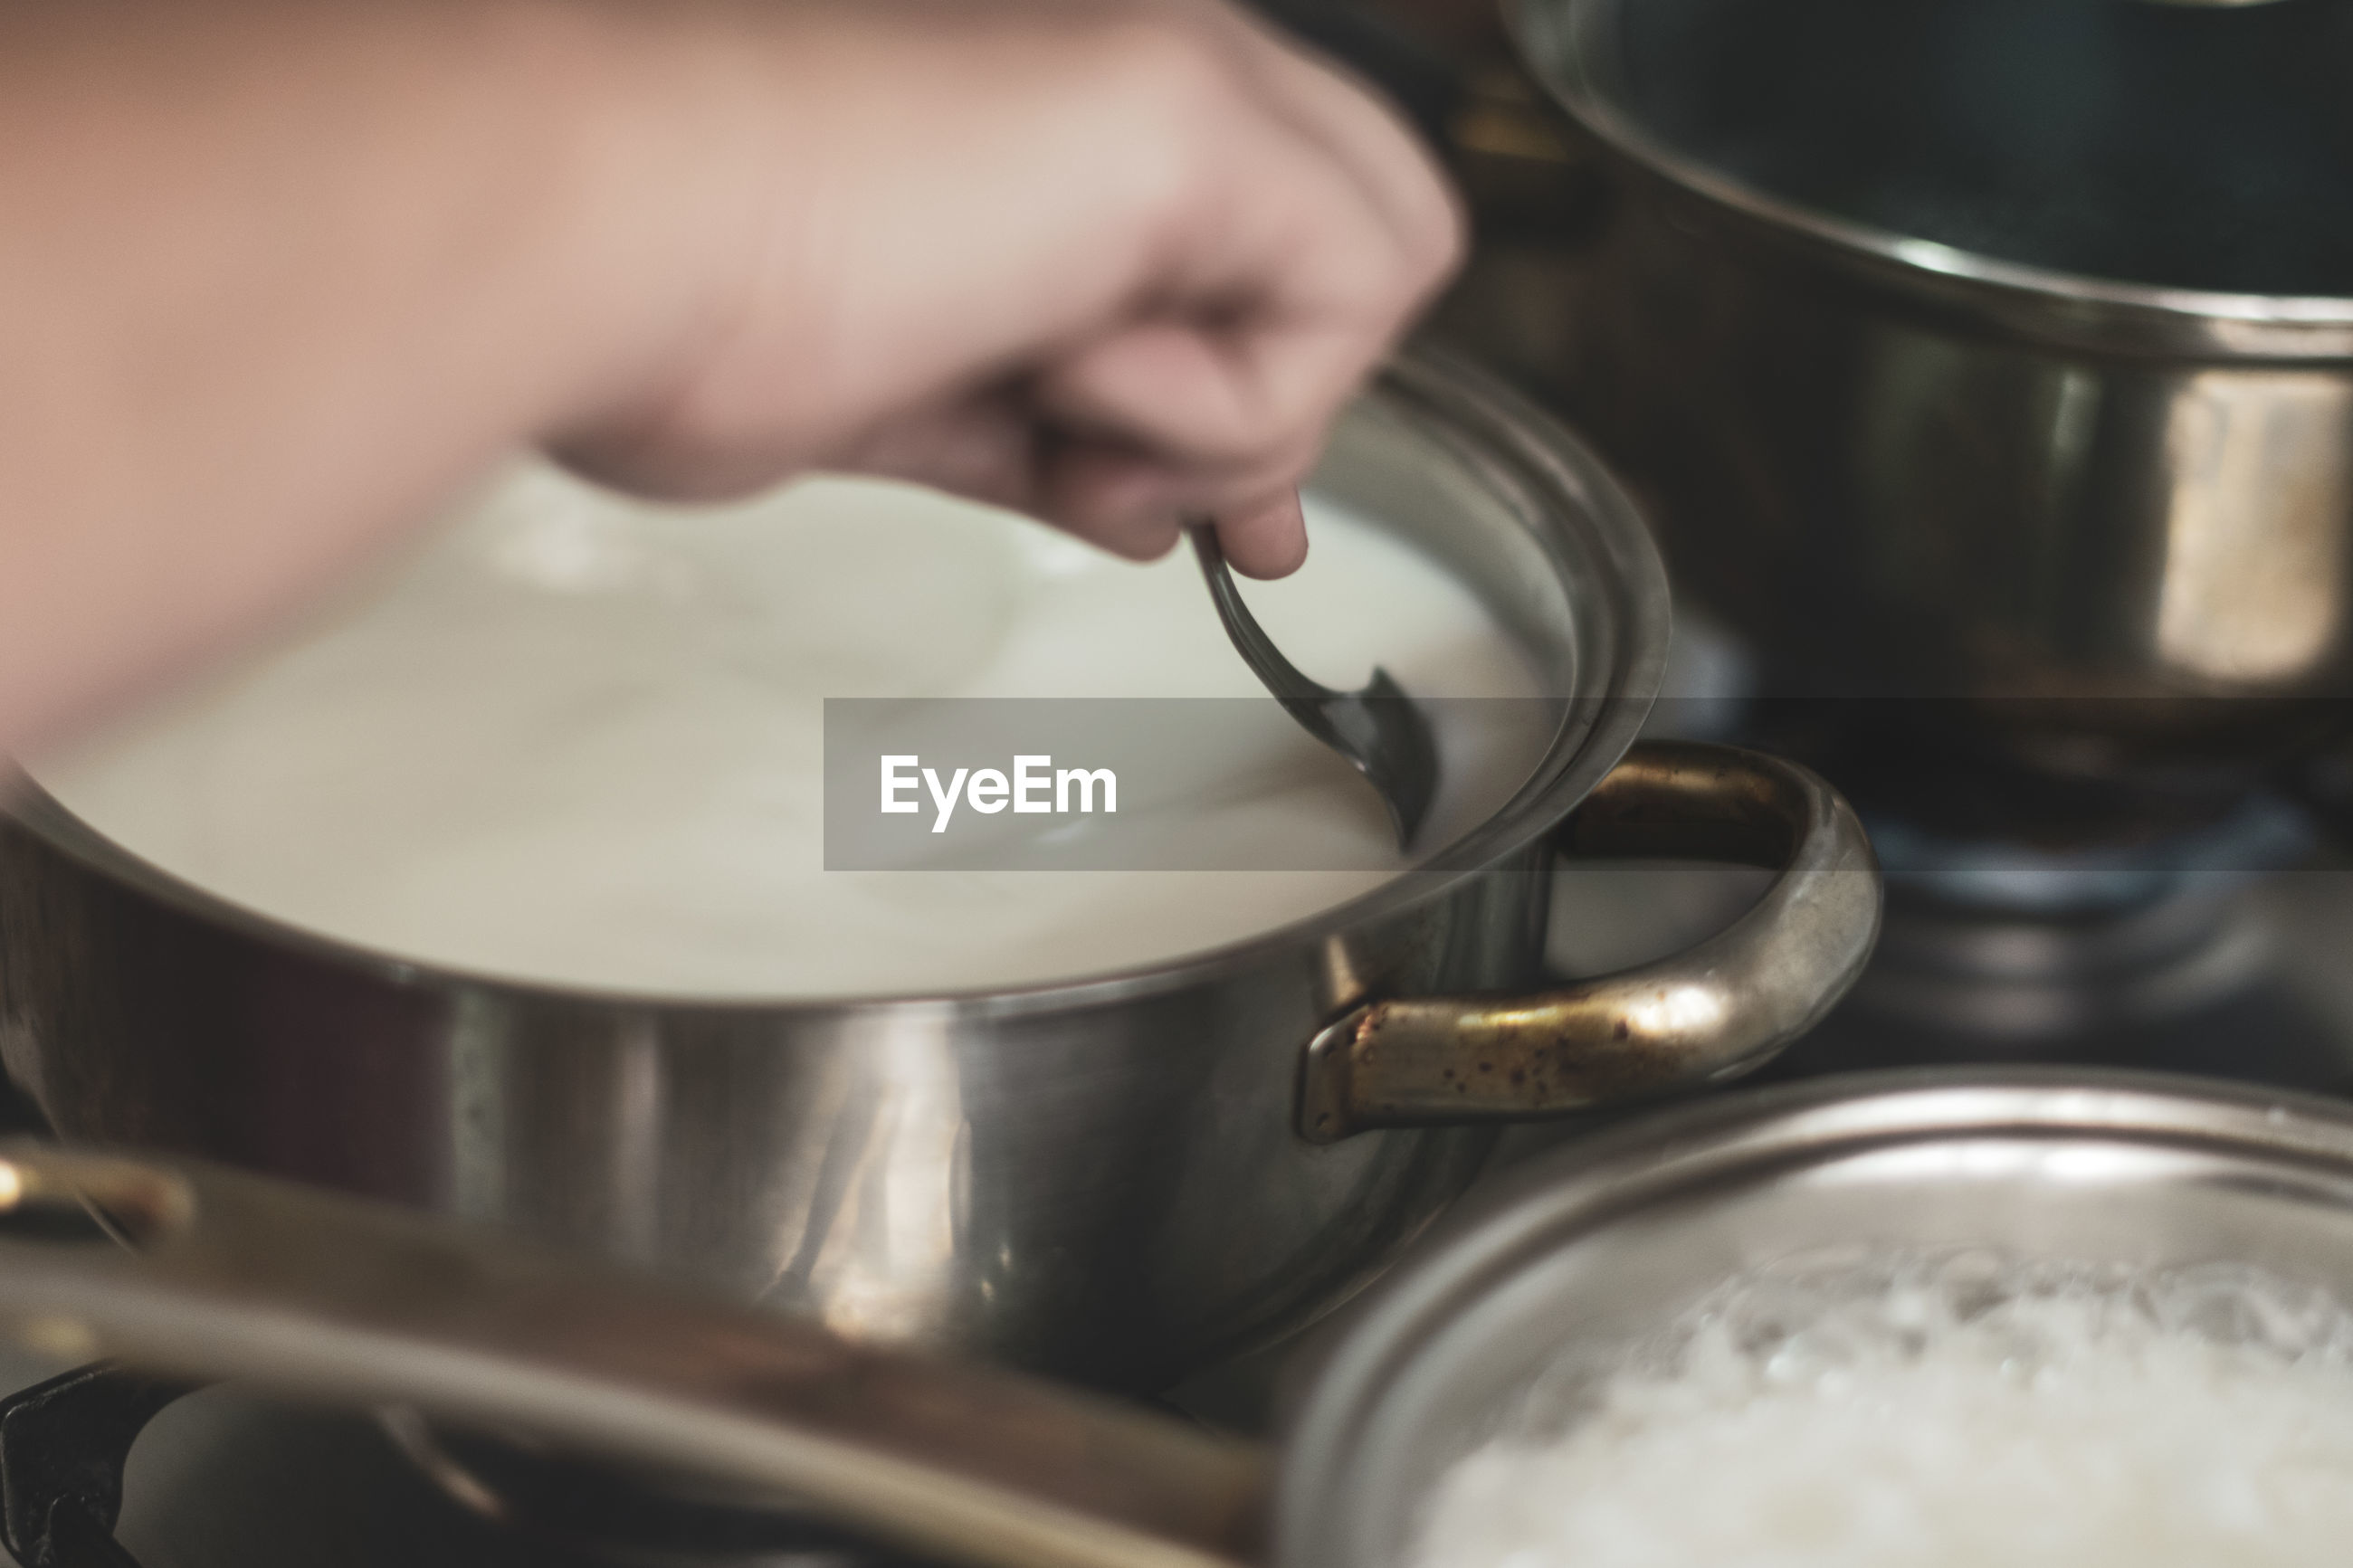 Cropped hand of person preparing food at home